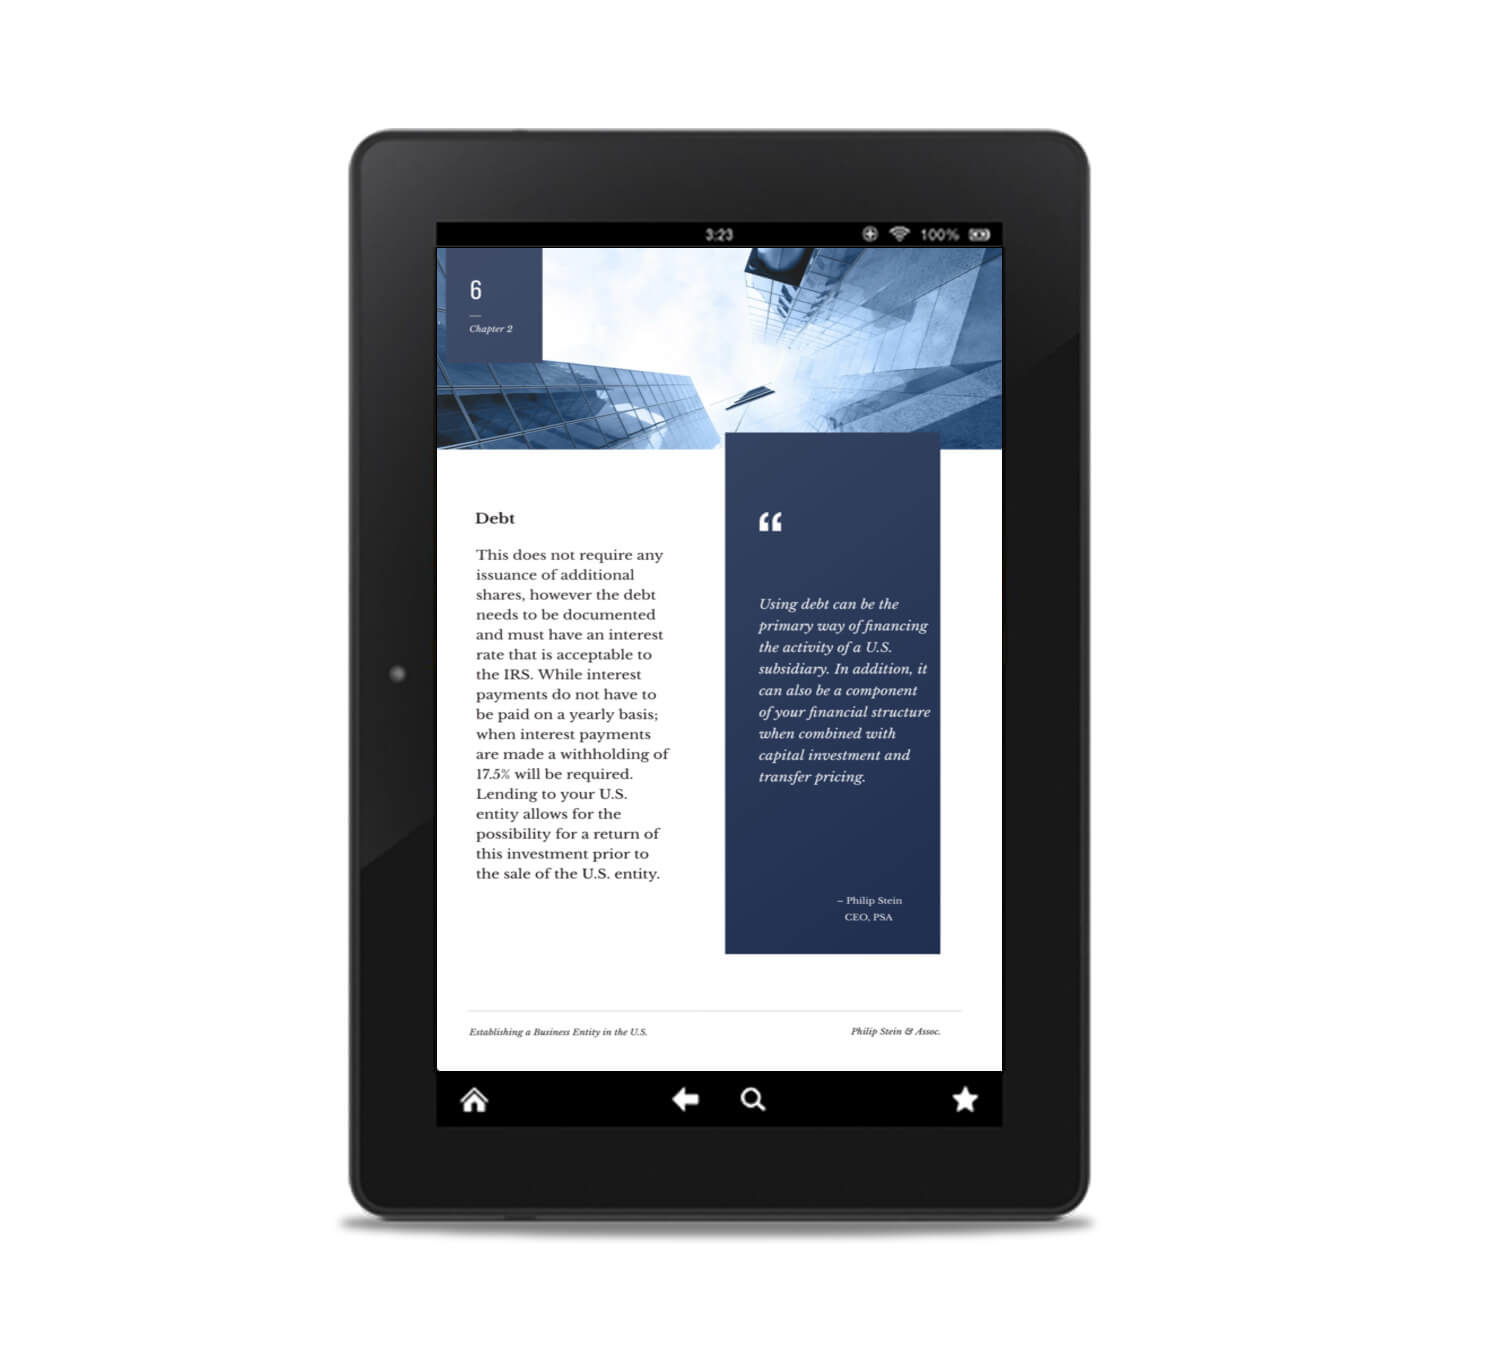 internal page of an ebook